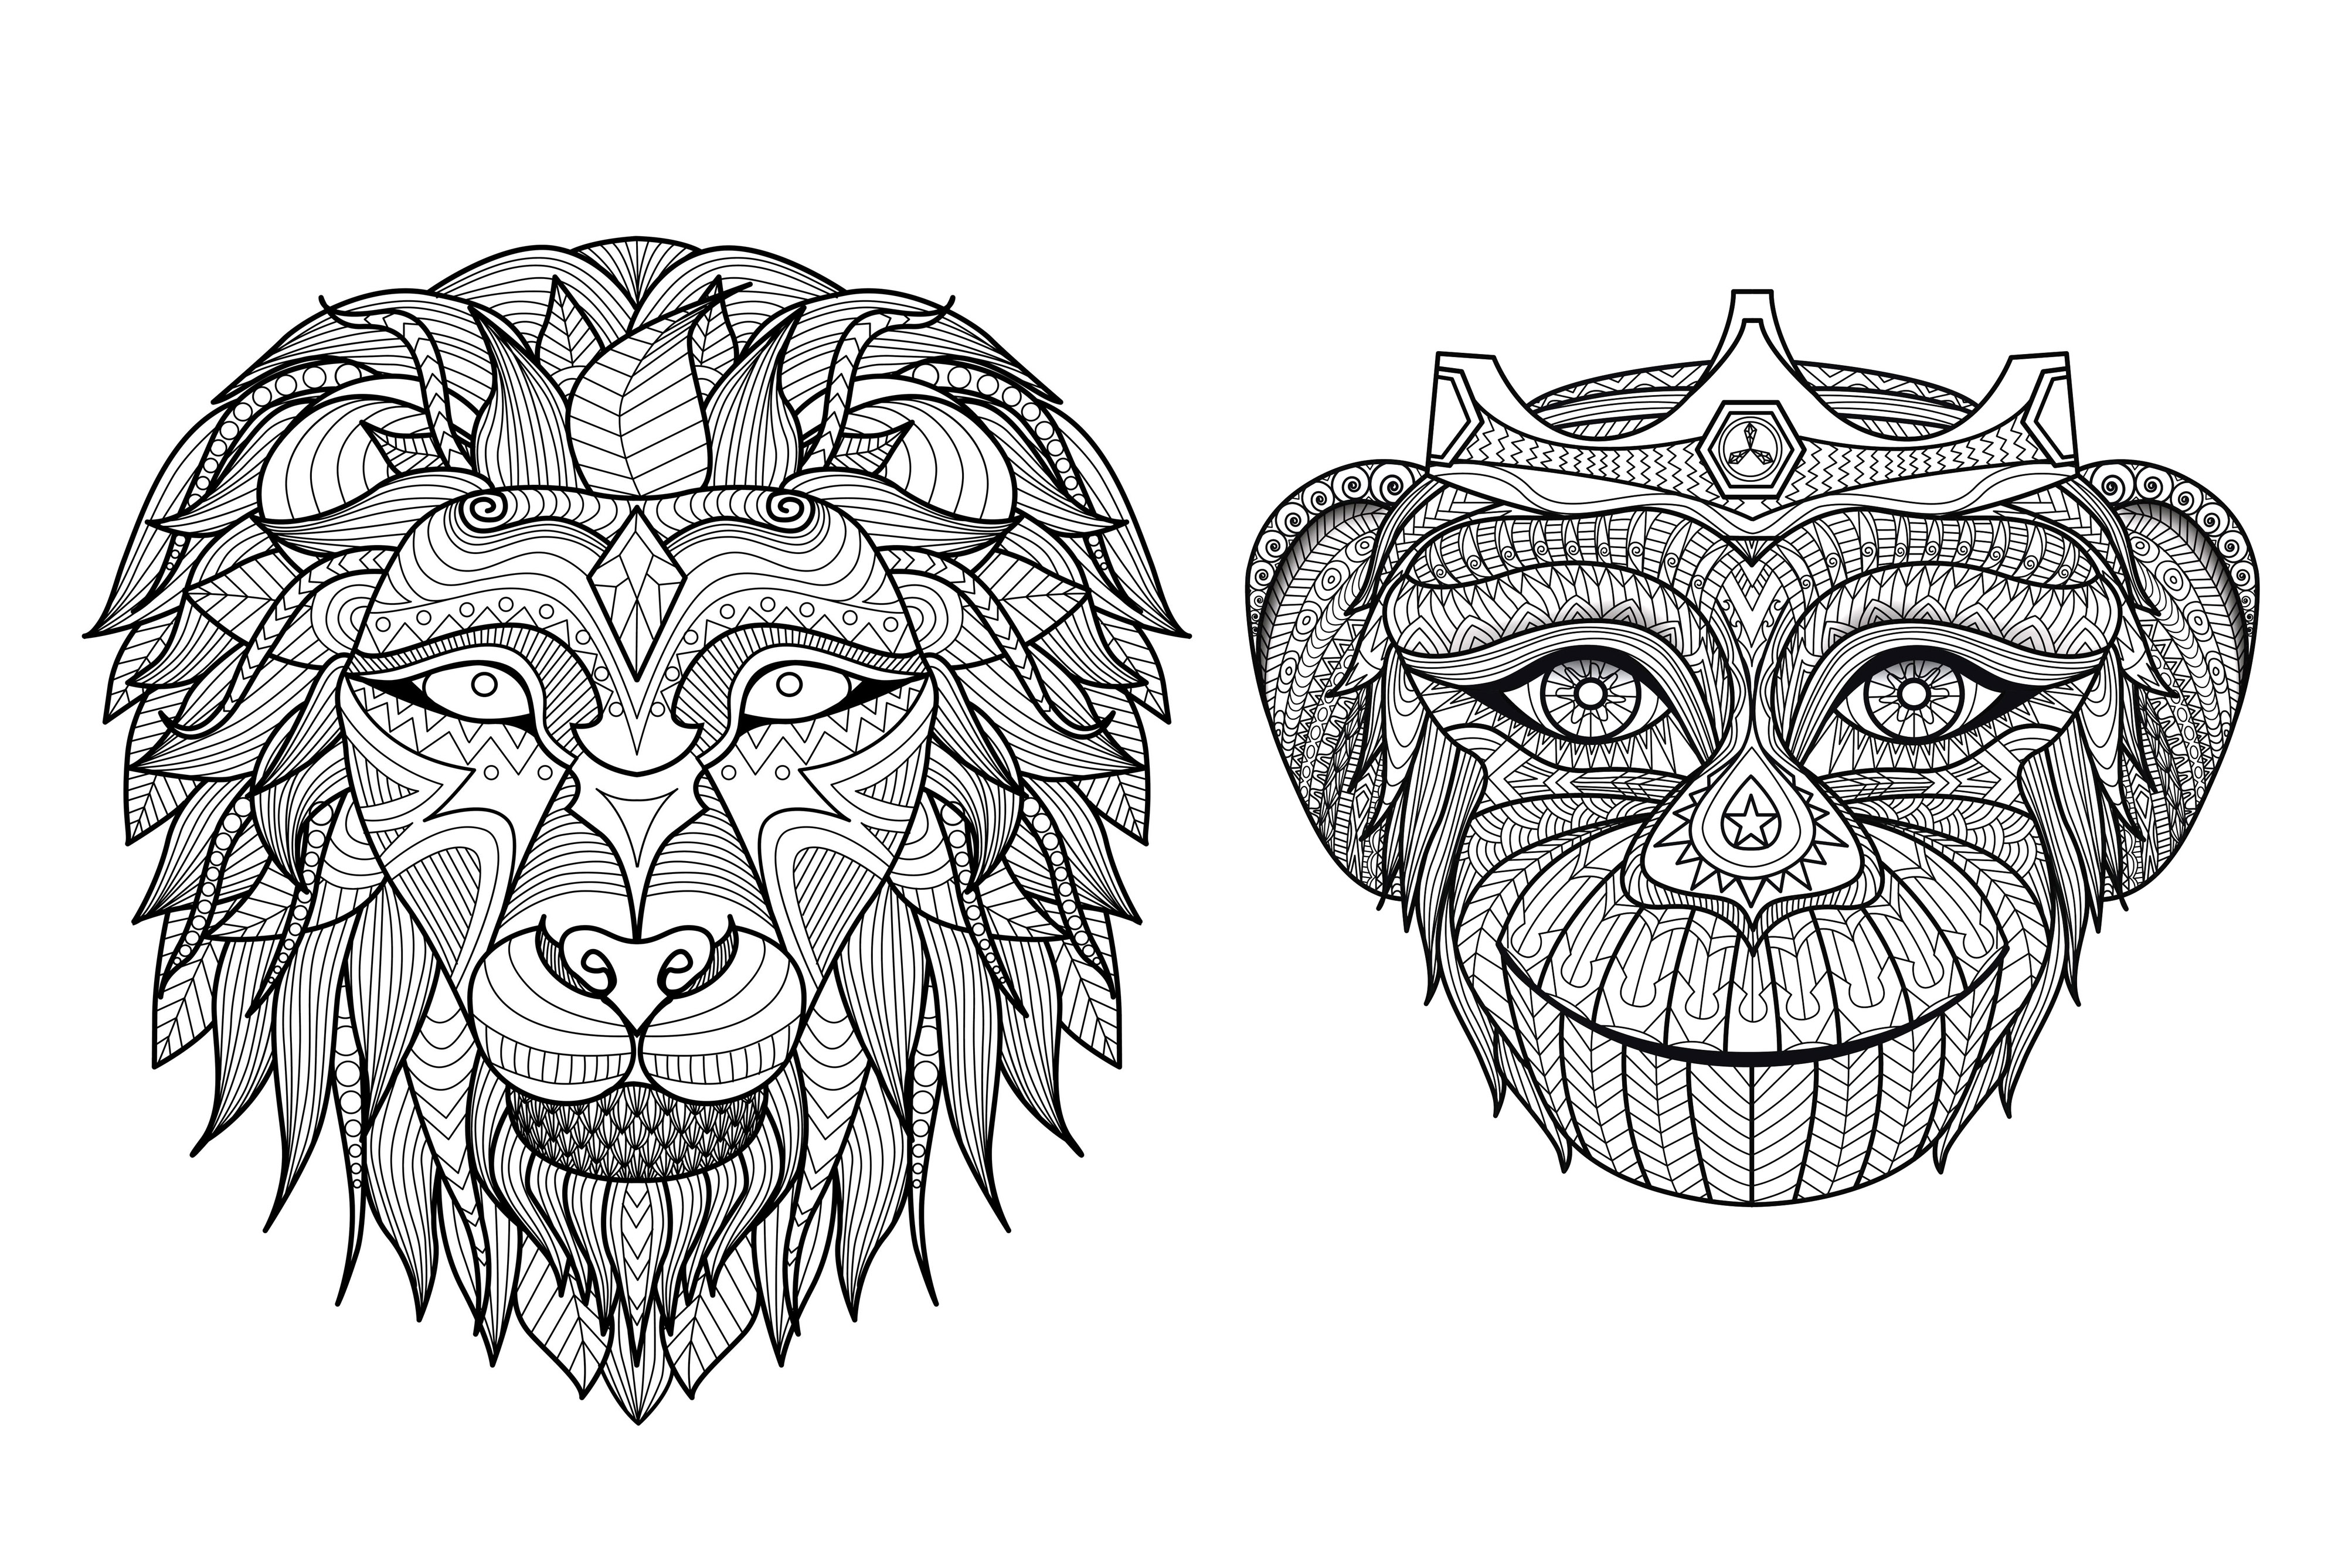 Coloring page of the head of two animals from Africa : A Lion and a Monkey !